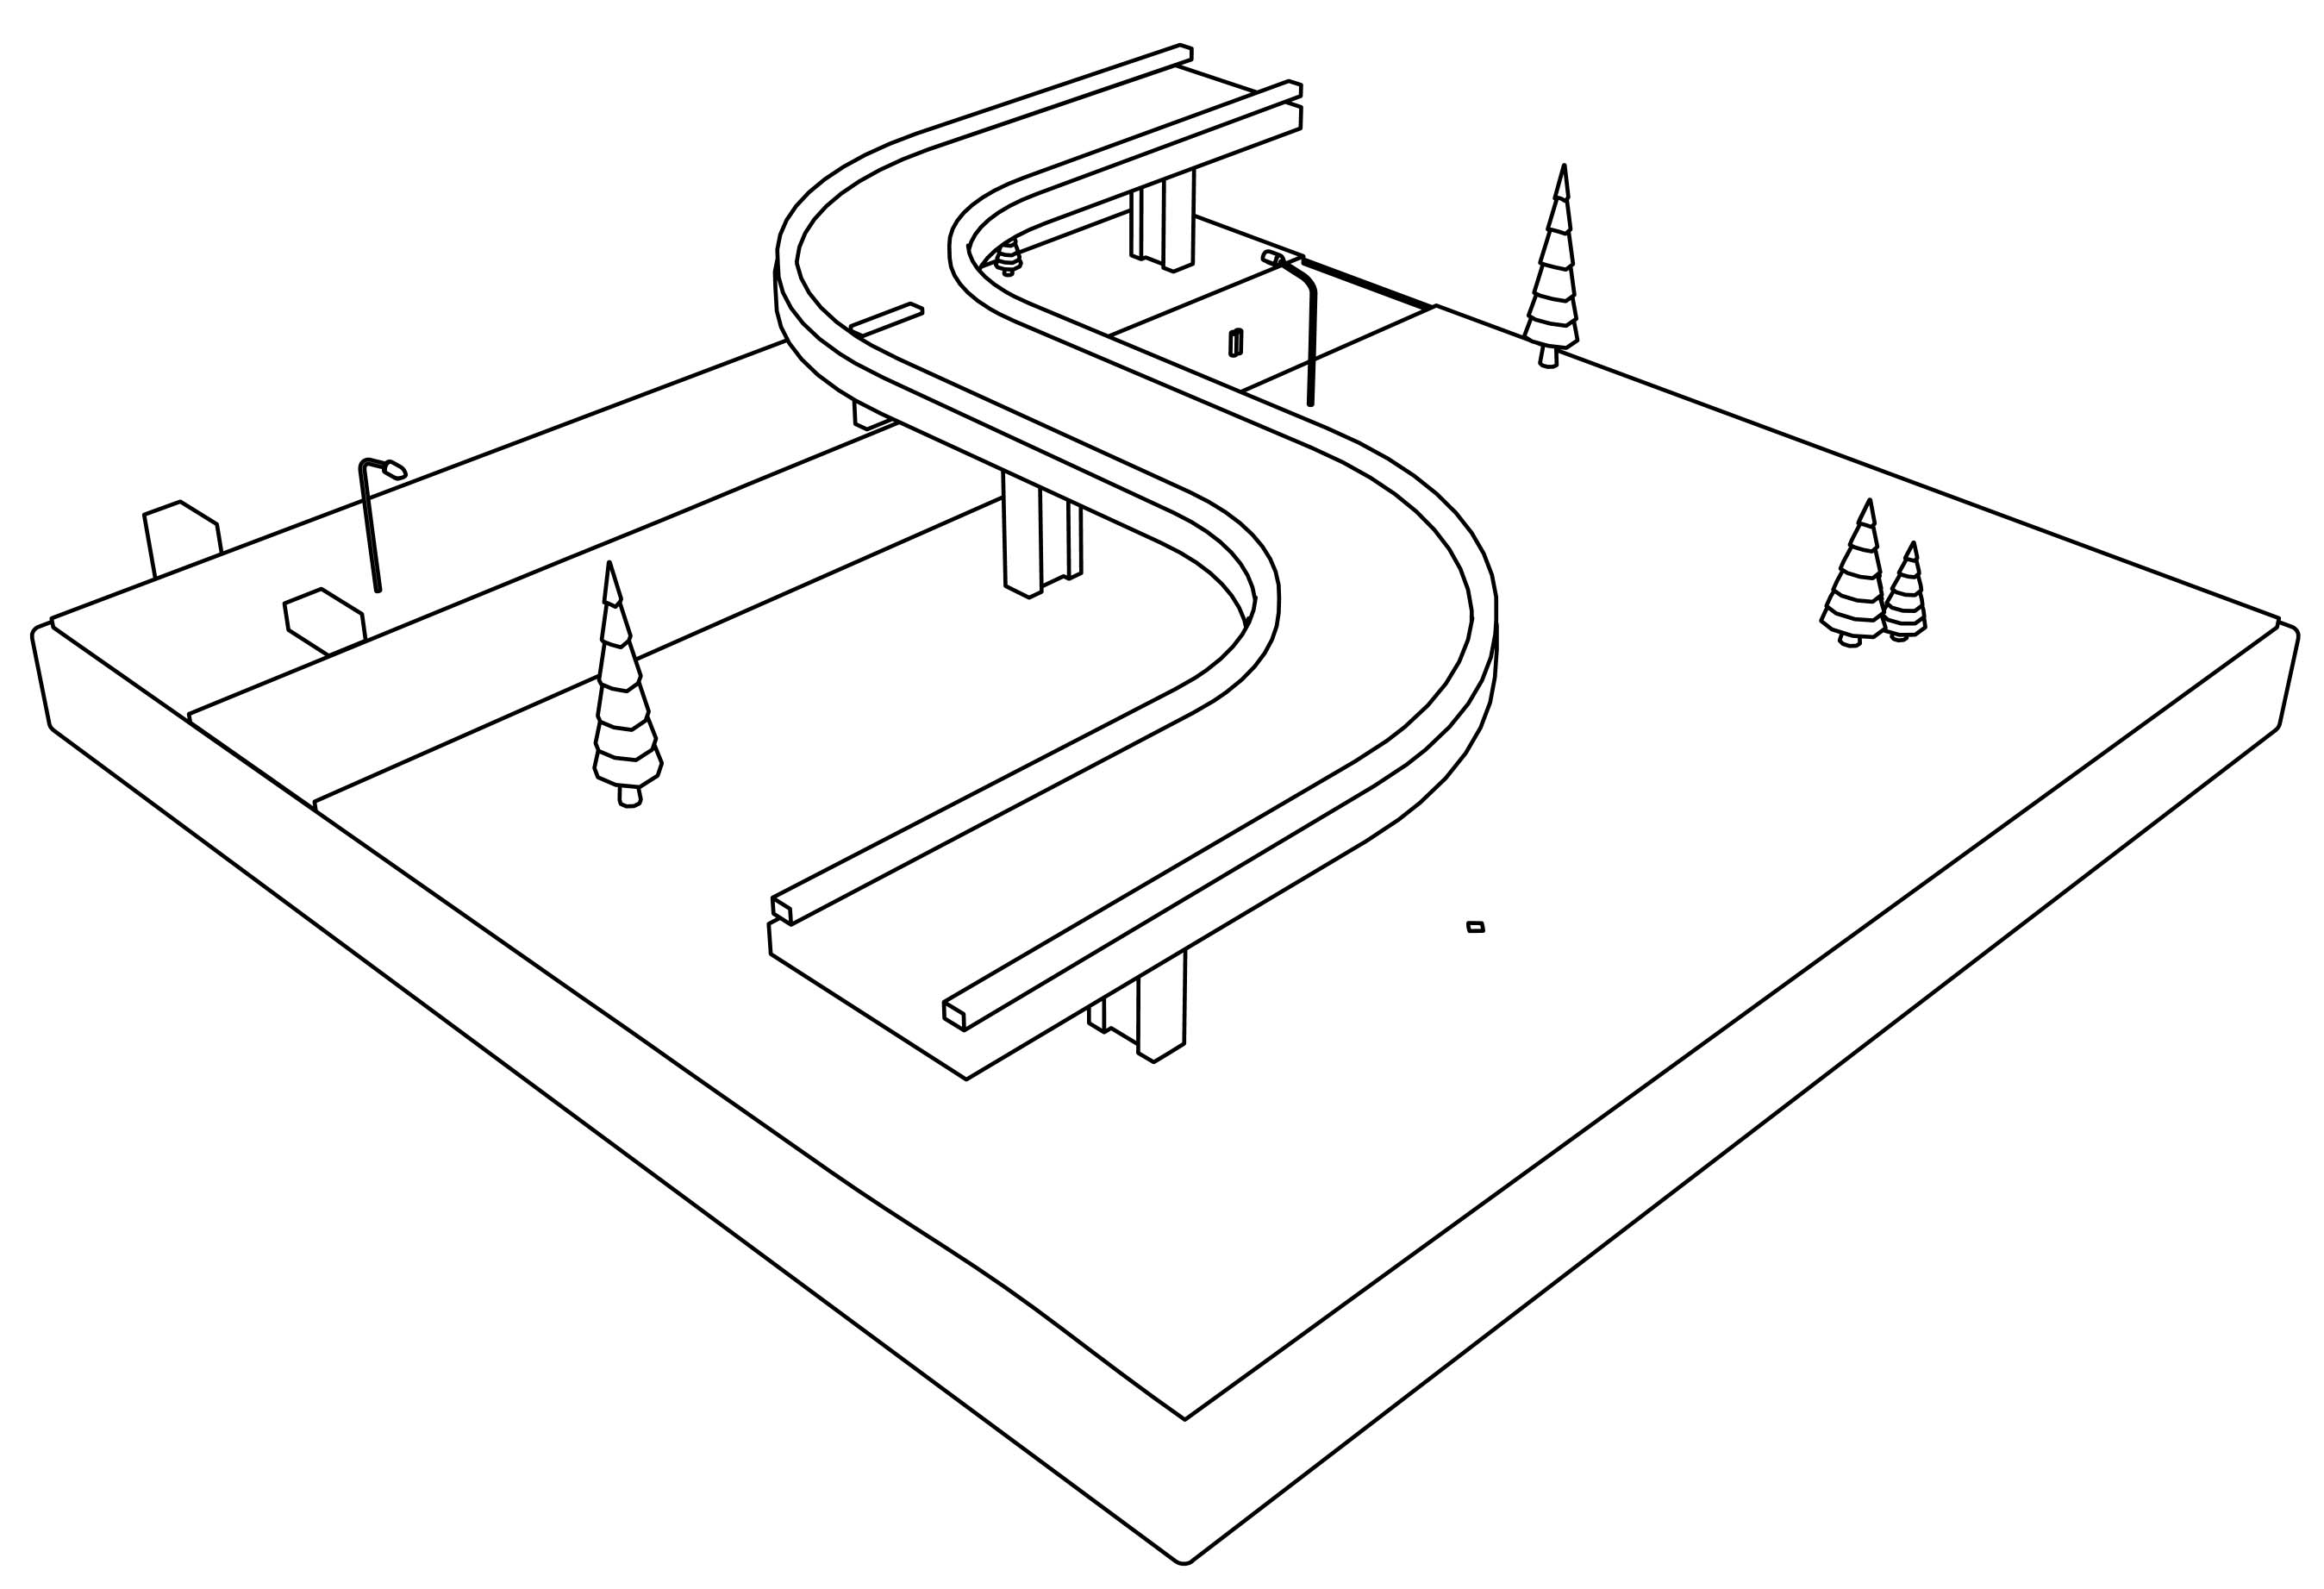 Bridge (Freeway) Coloring Page